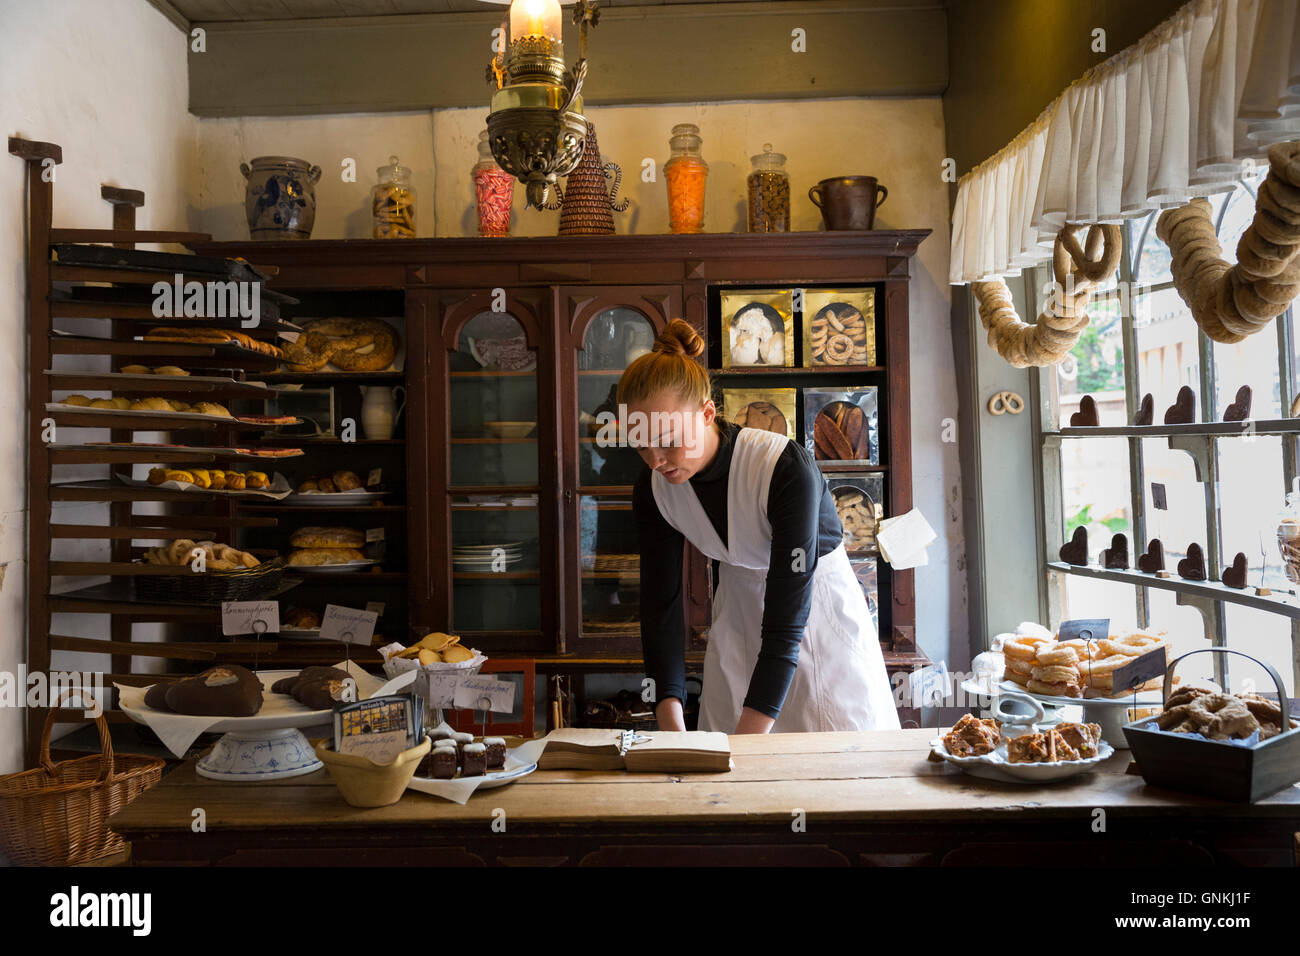 Costume character in period bakery at Den Gamle By, The Old Town, folk museum at Aarhus, Denmark - Stock Image